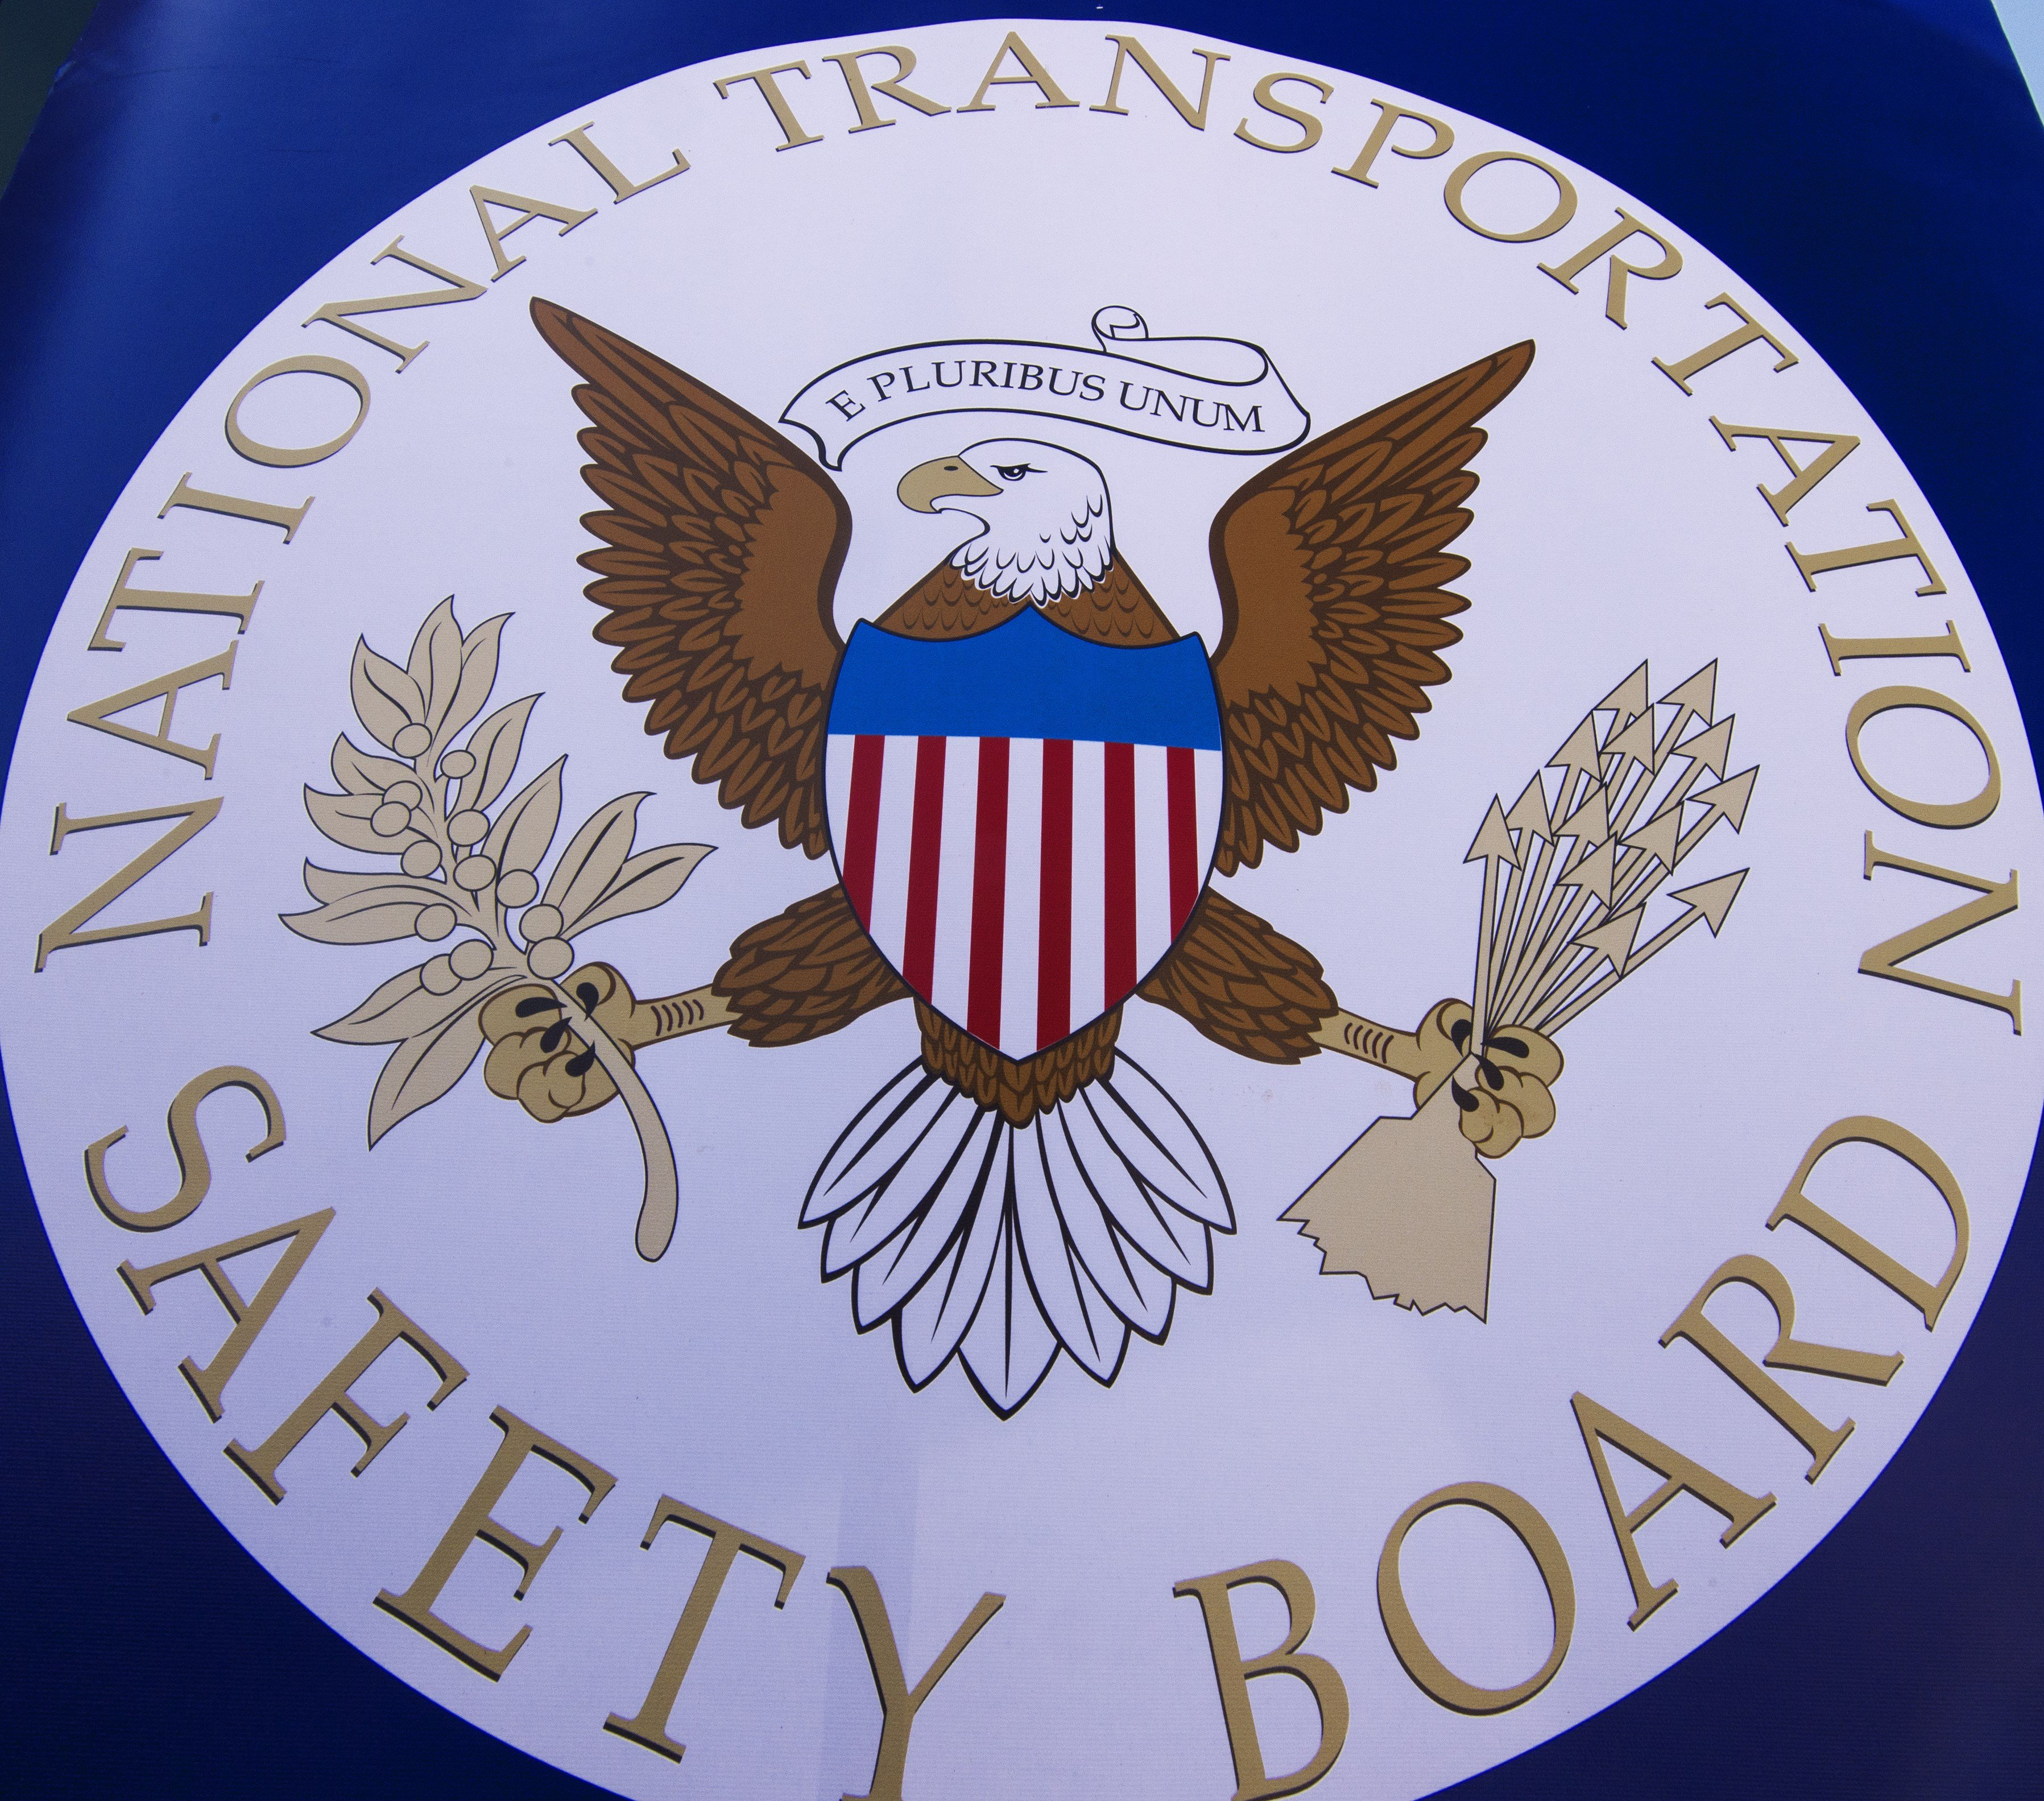 The NTSB logo is seen during a safety event for children at Trailside Middle School, in Ashburn, Virginia August 25, 2015. PAUL J. RICHARDS/AFP/Getty Images